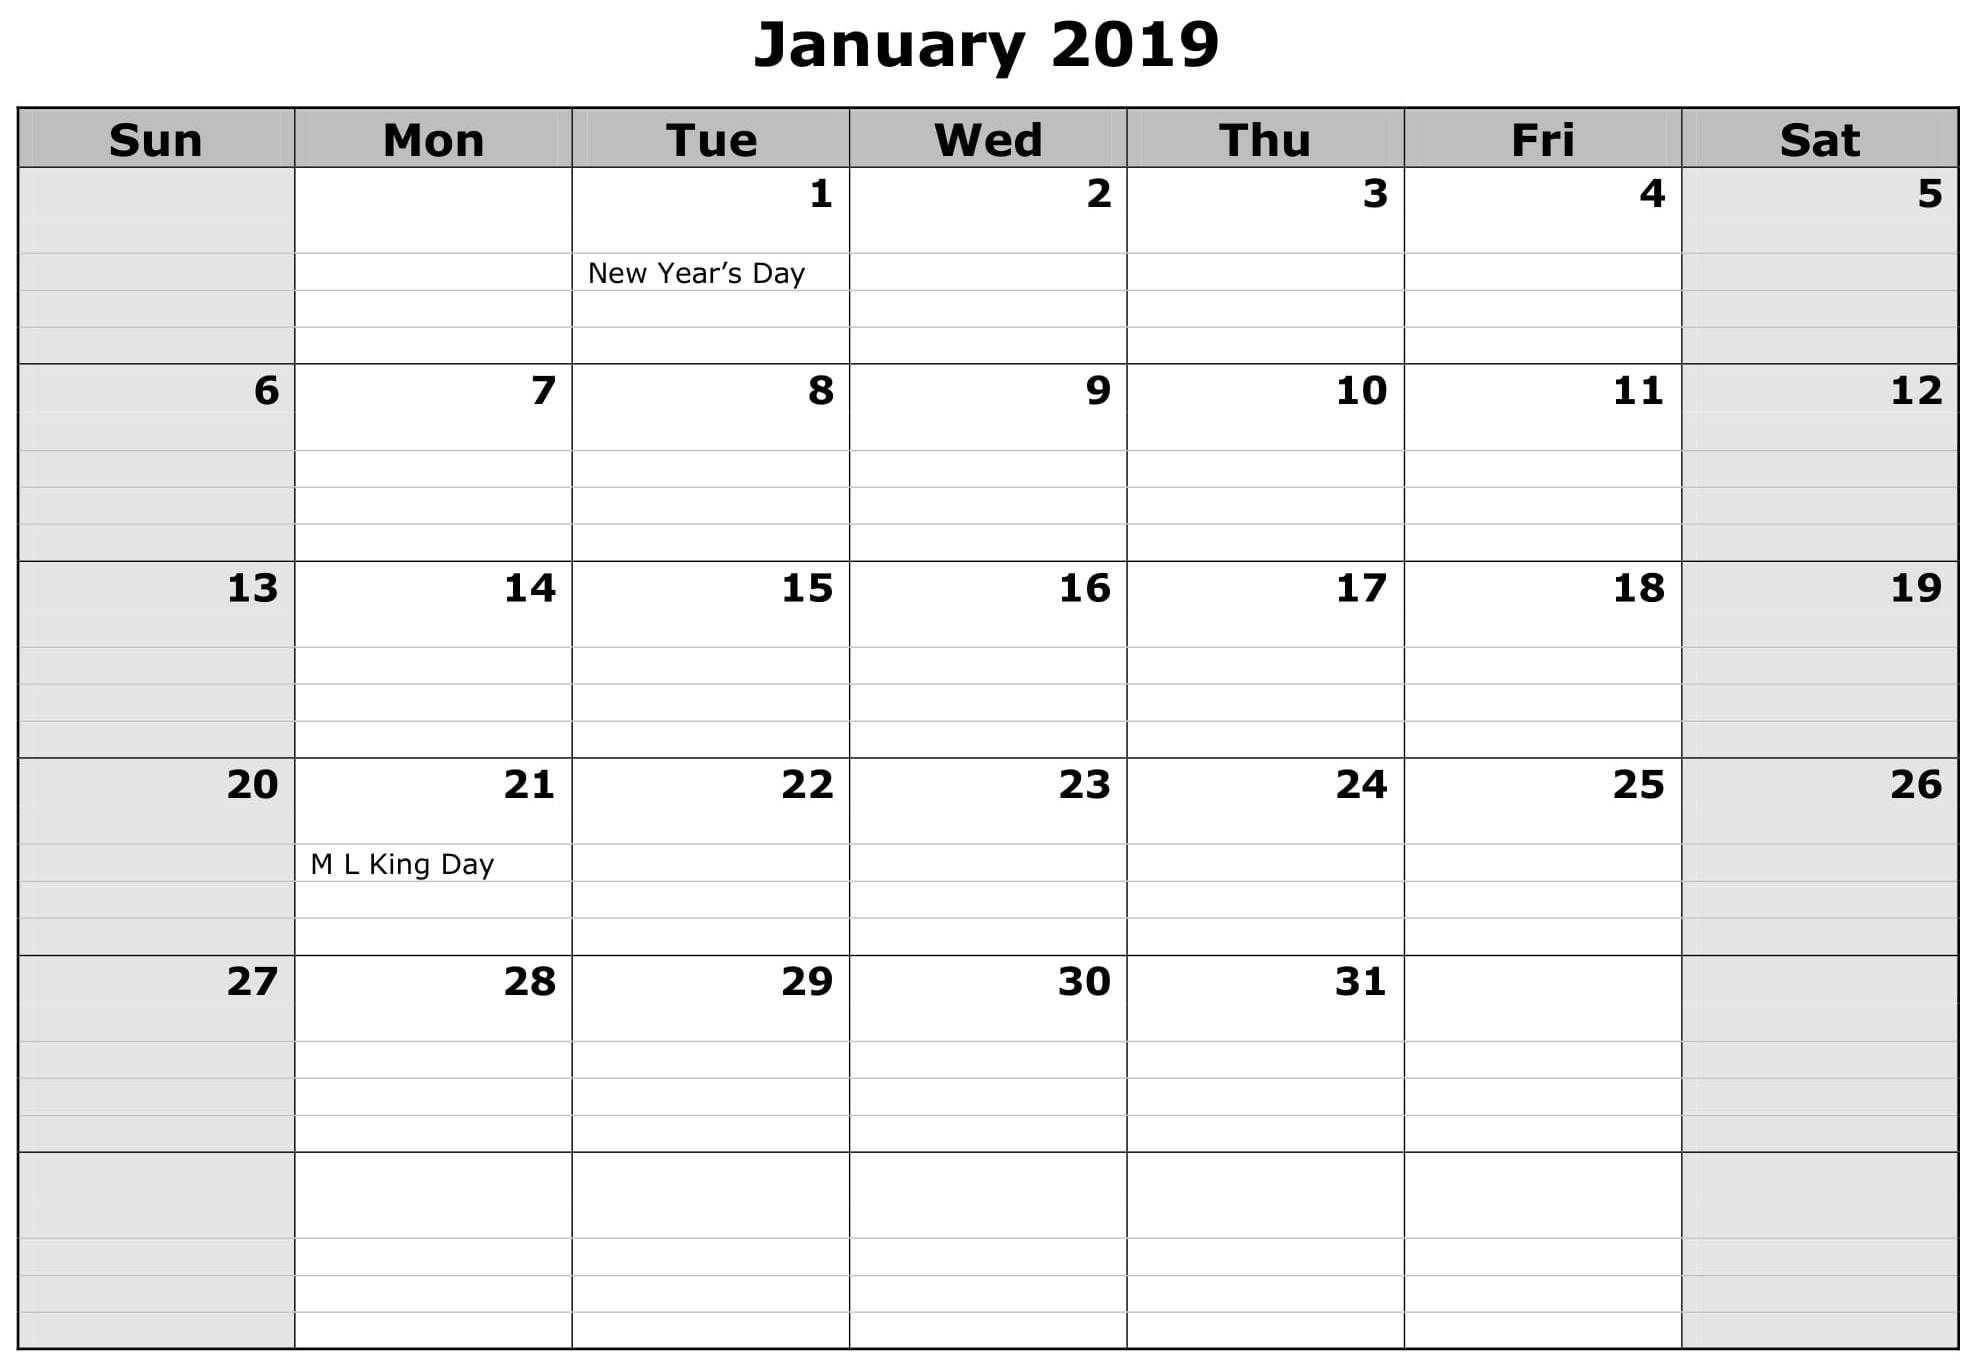 January Calendar Excel Worksheet